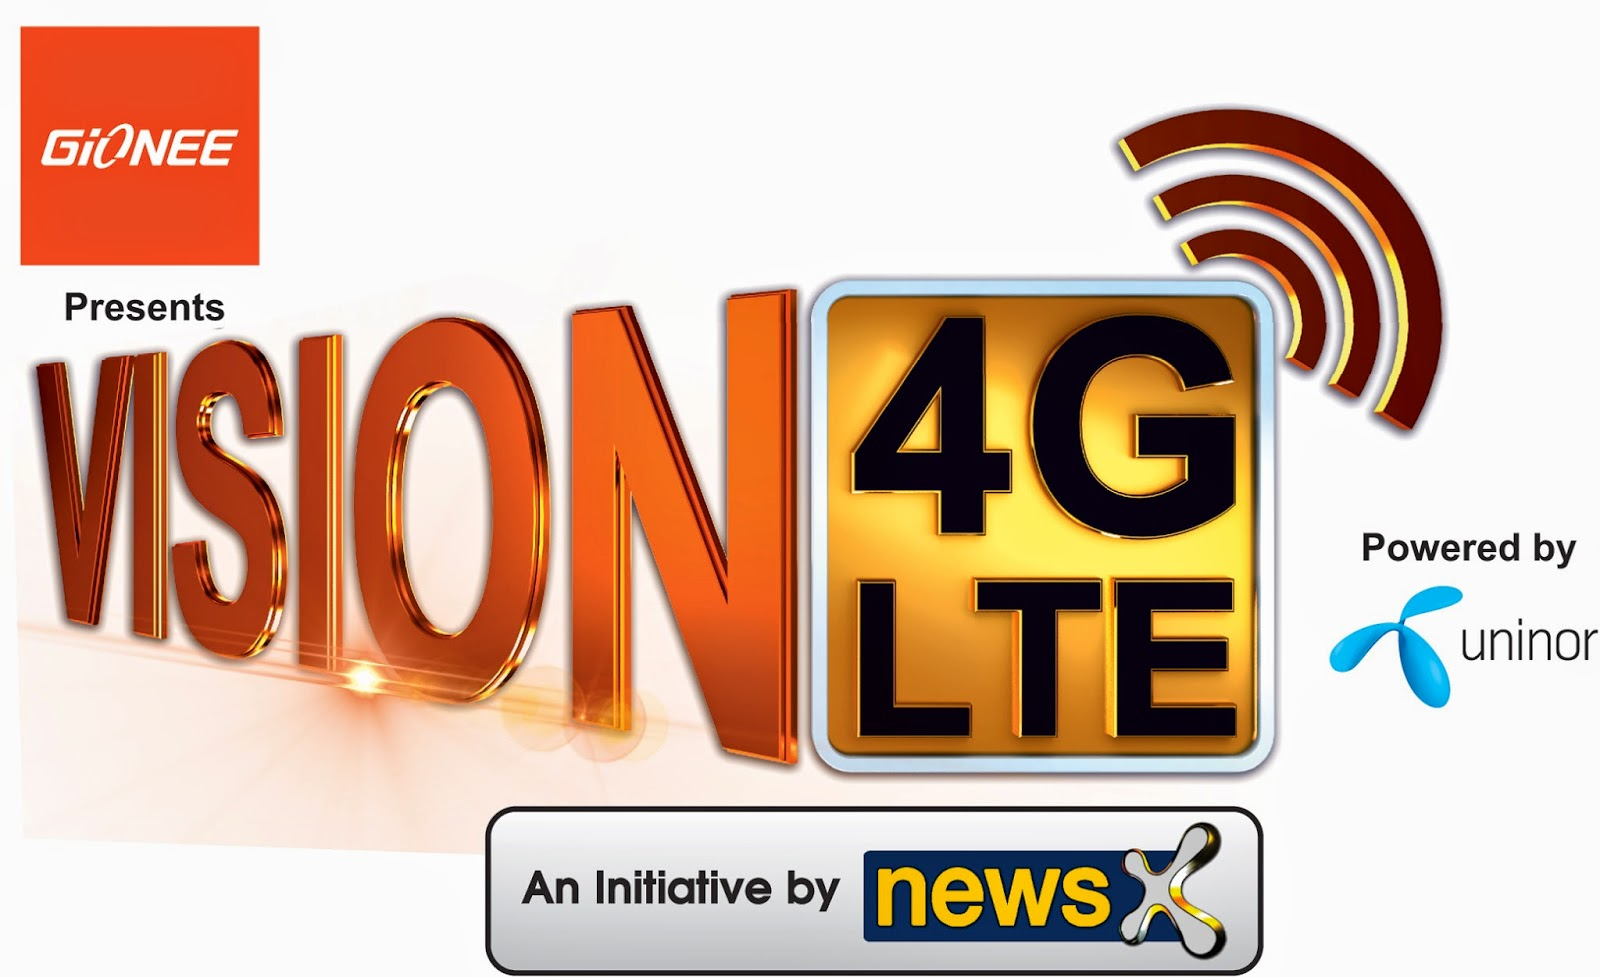 NewsX presents VISION 4G LTE